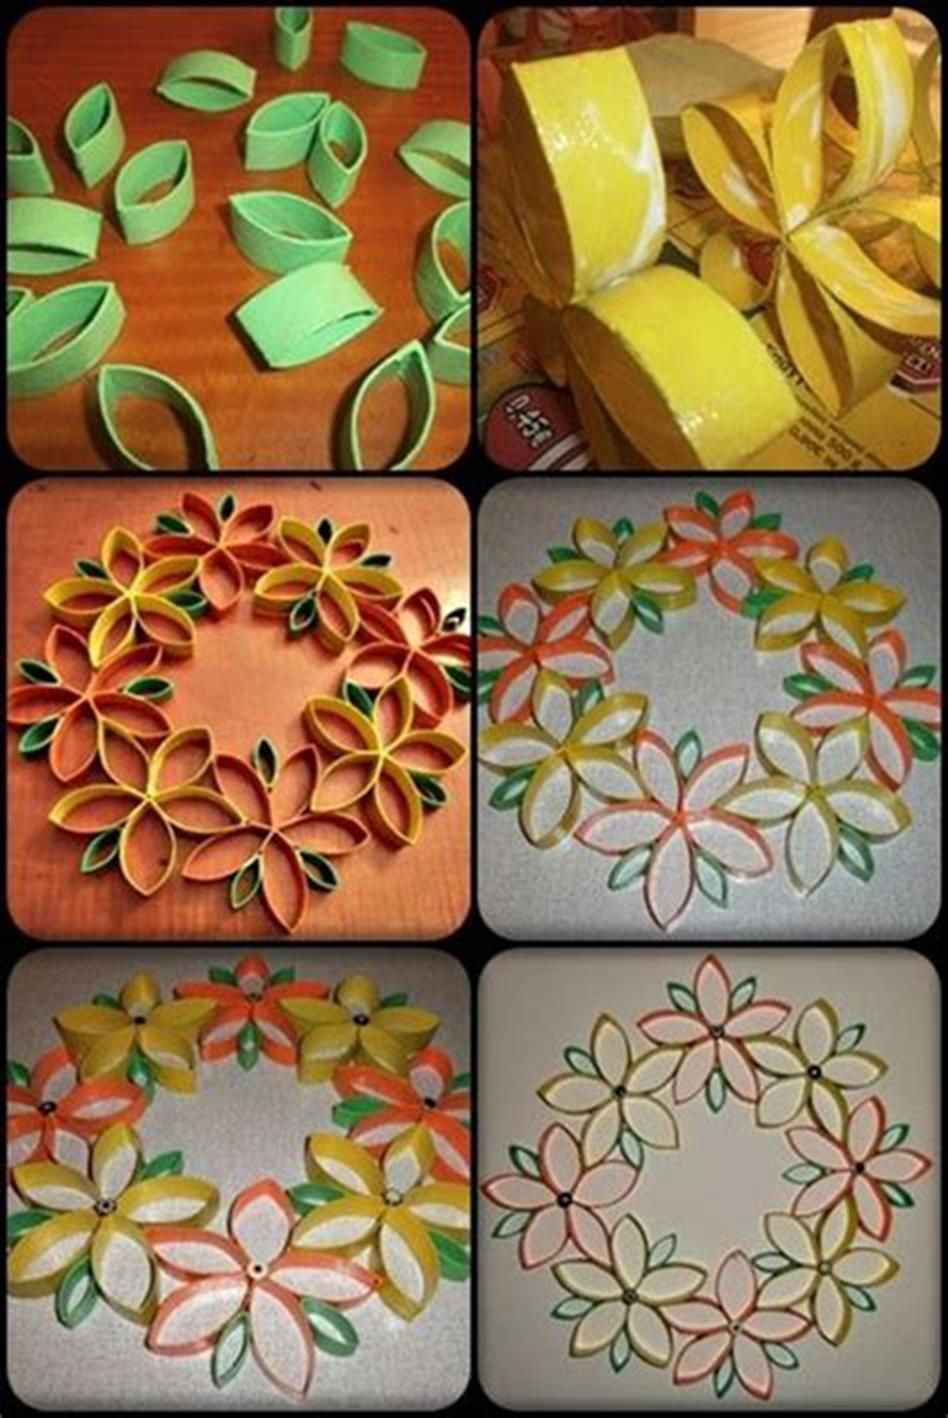 30 Diy Easy To Make Craft Ideas With Toilet Paper Rolls Toilet Paper Crafts Toilet Paper Roll Wall Art Crafts